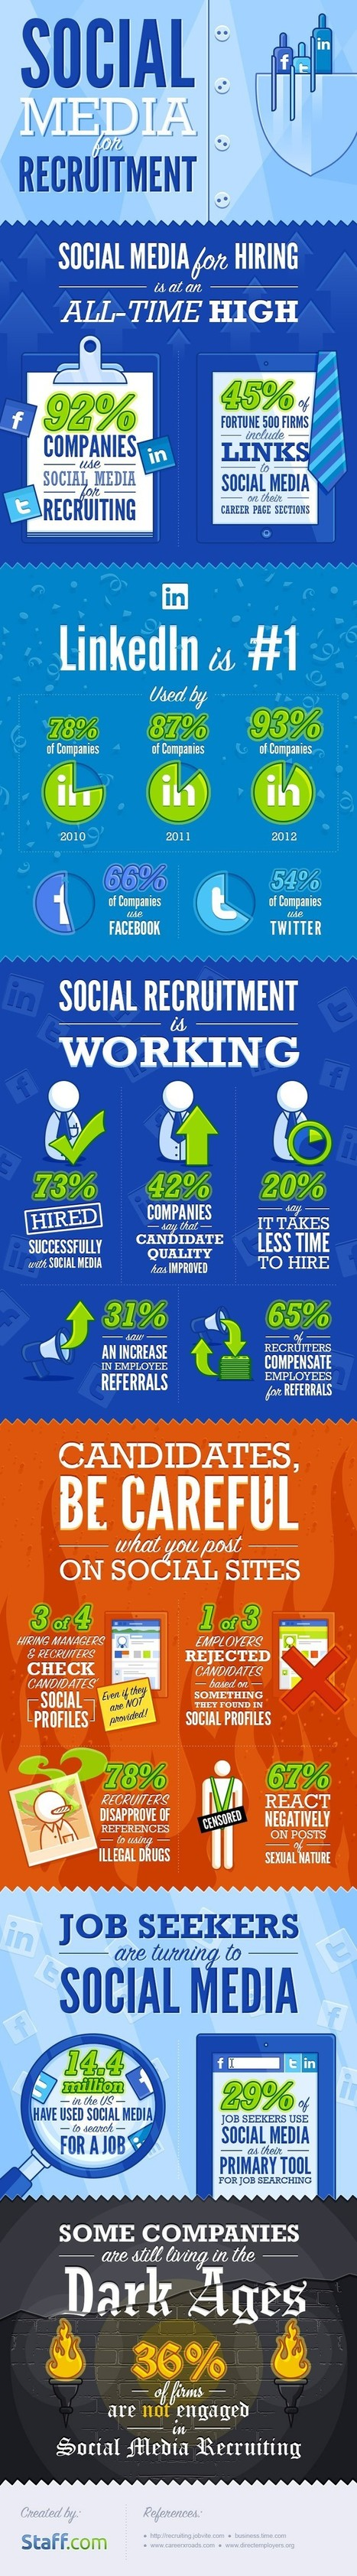 Why 92% Companies use Social Media for Reruitment? | All Infographics | Scoop.it